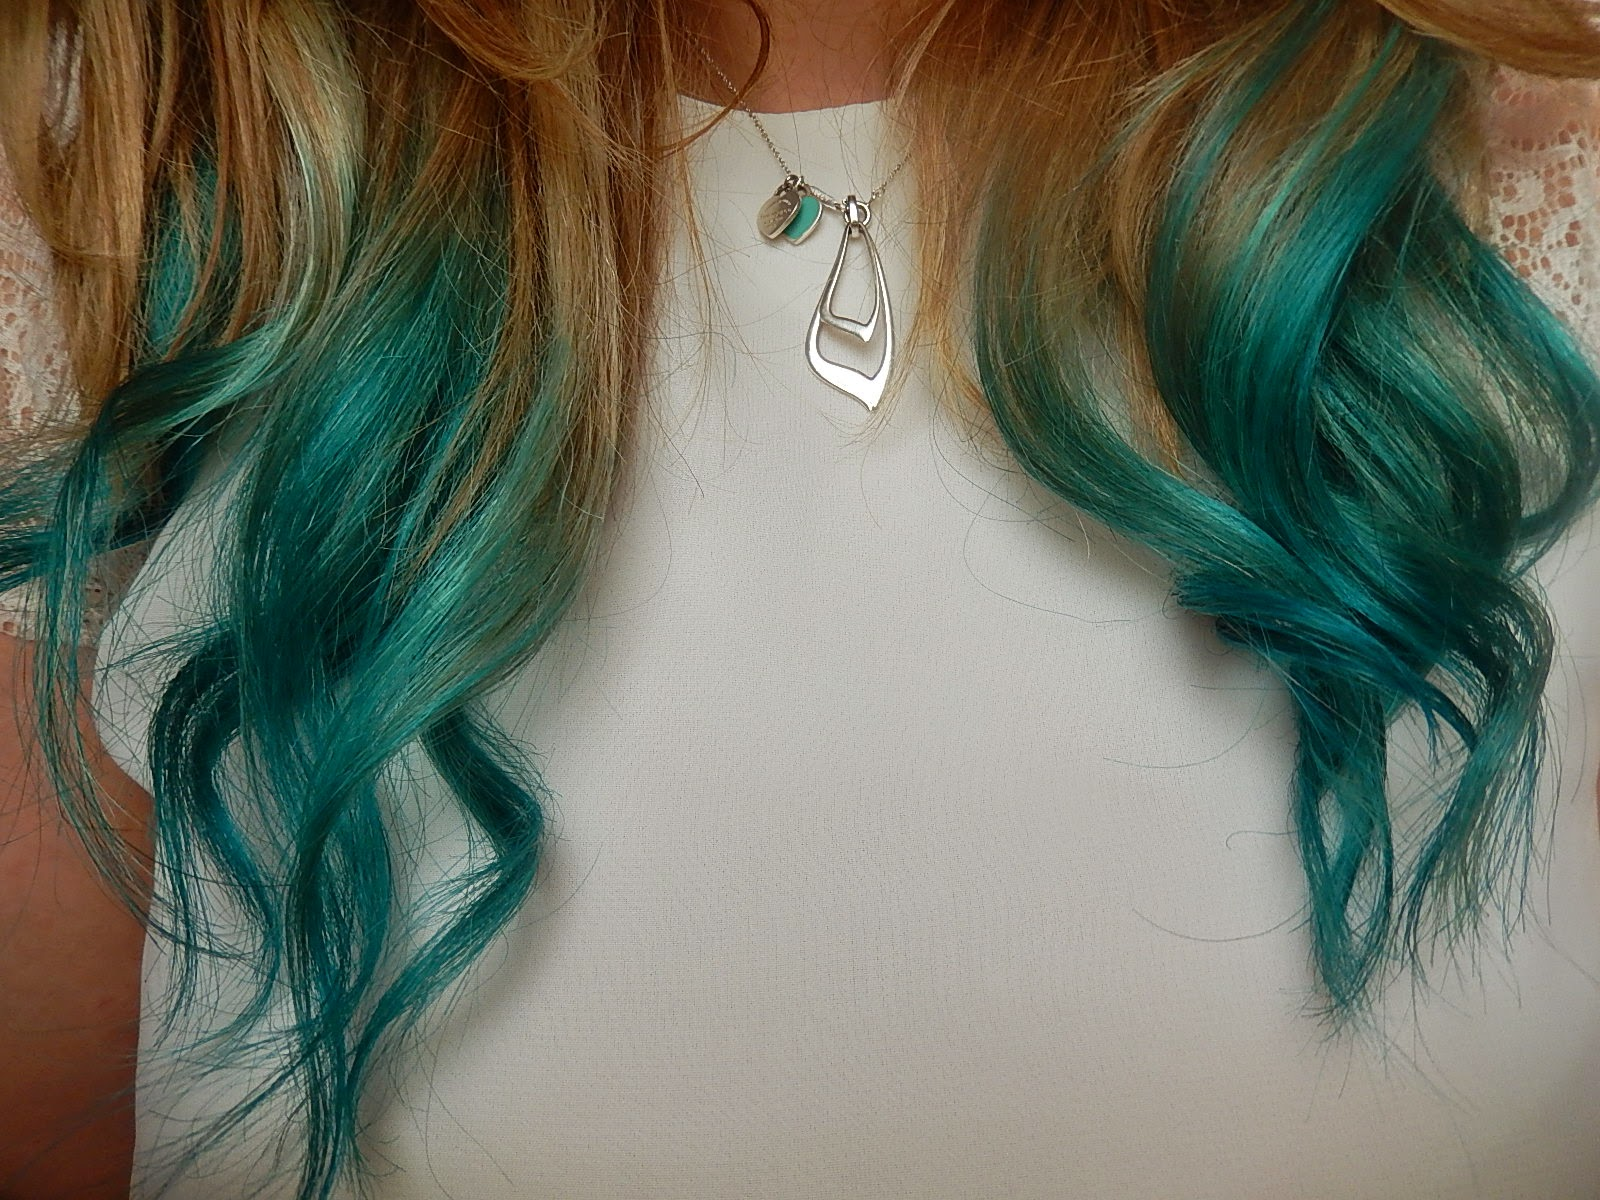 Beka's Beauty. UK Beauty Blog with Mermaid Dip Dye Hair from Hair Crazy